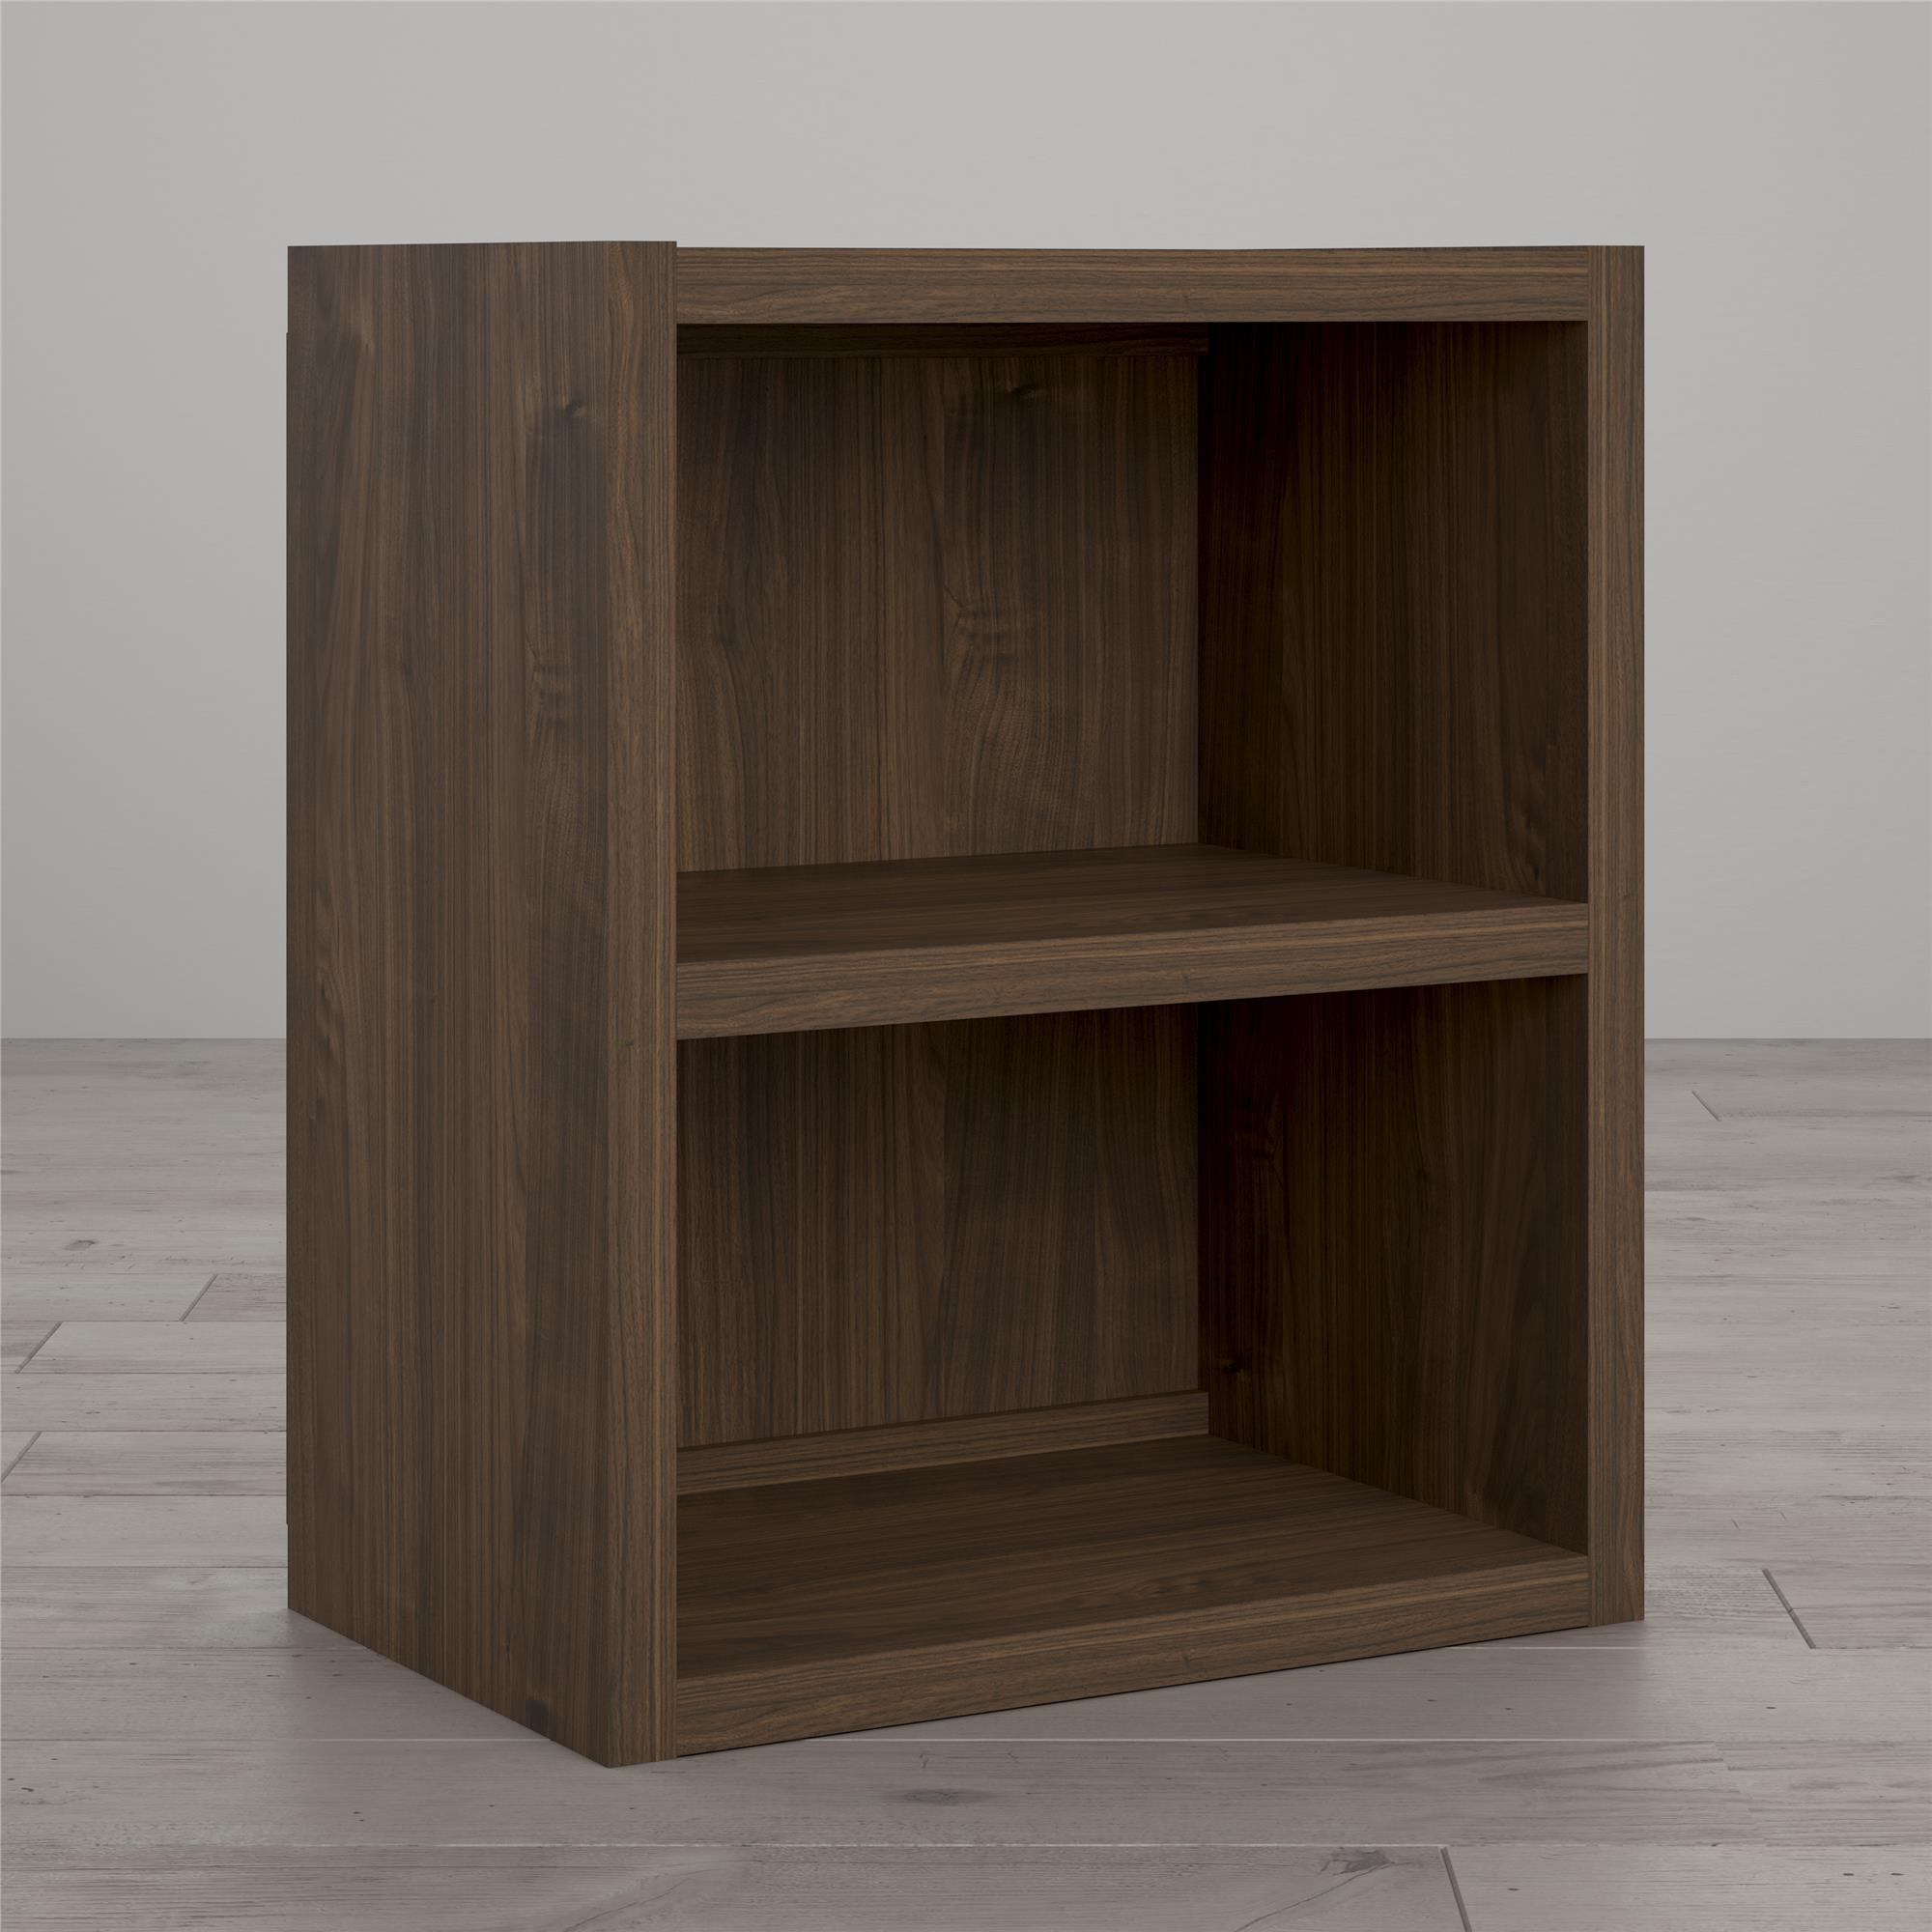 Little Seeds Sierra Ridge Terra Modular Bookcase Cubby, Walnut